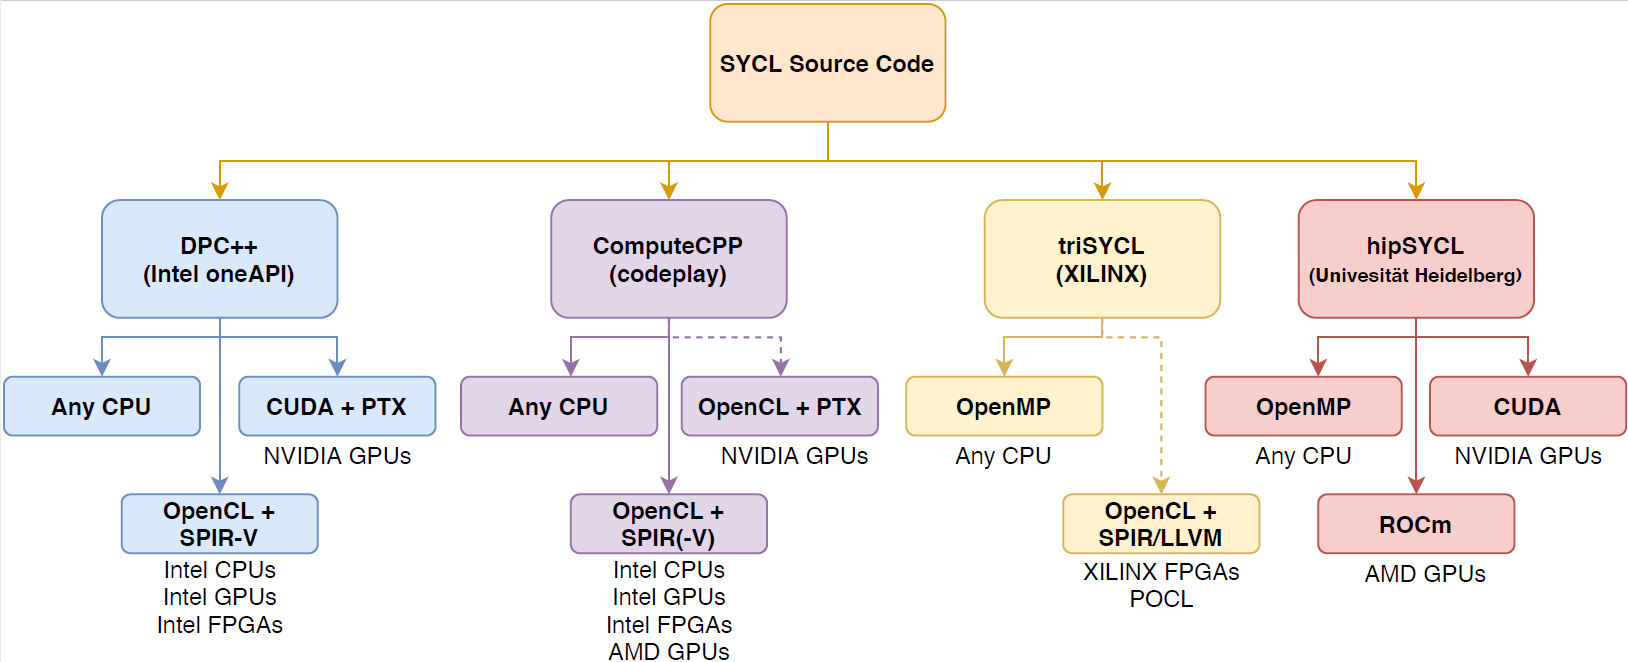 Status of SYCL implementations (Oct 2020). Four major implementations: DPC++ (Intel oneAPI); ComputeCPP (codeplay); triSYCL (XILINX); hipSYCL (Universitaet Heidelberg)